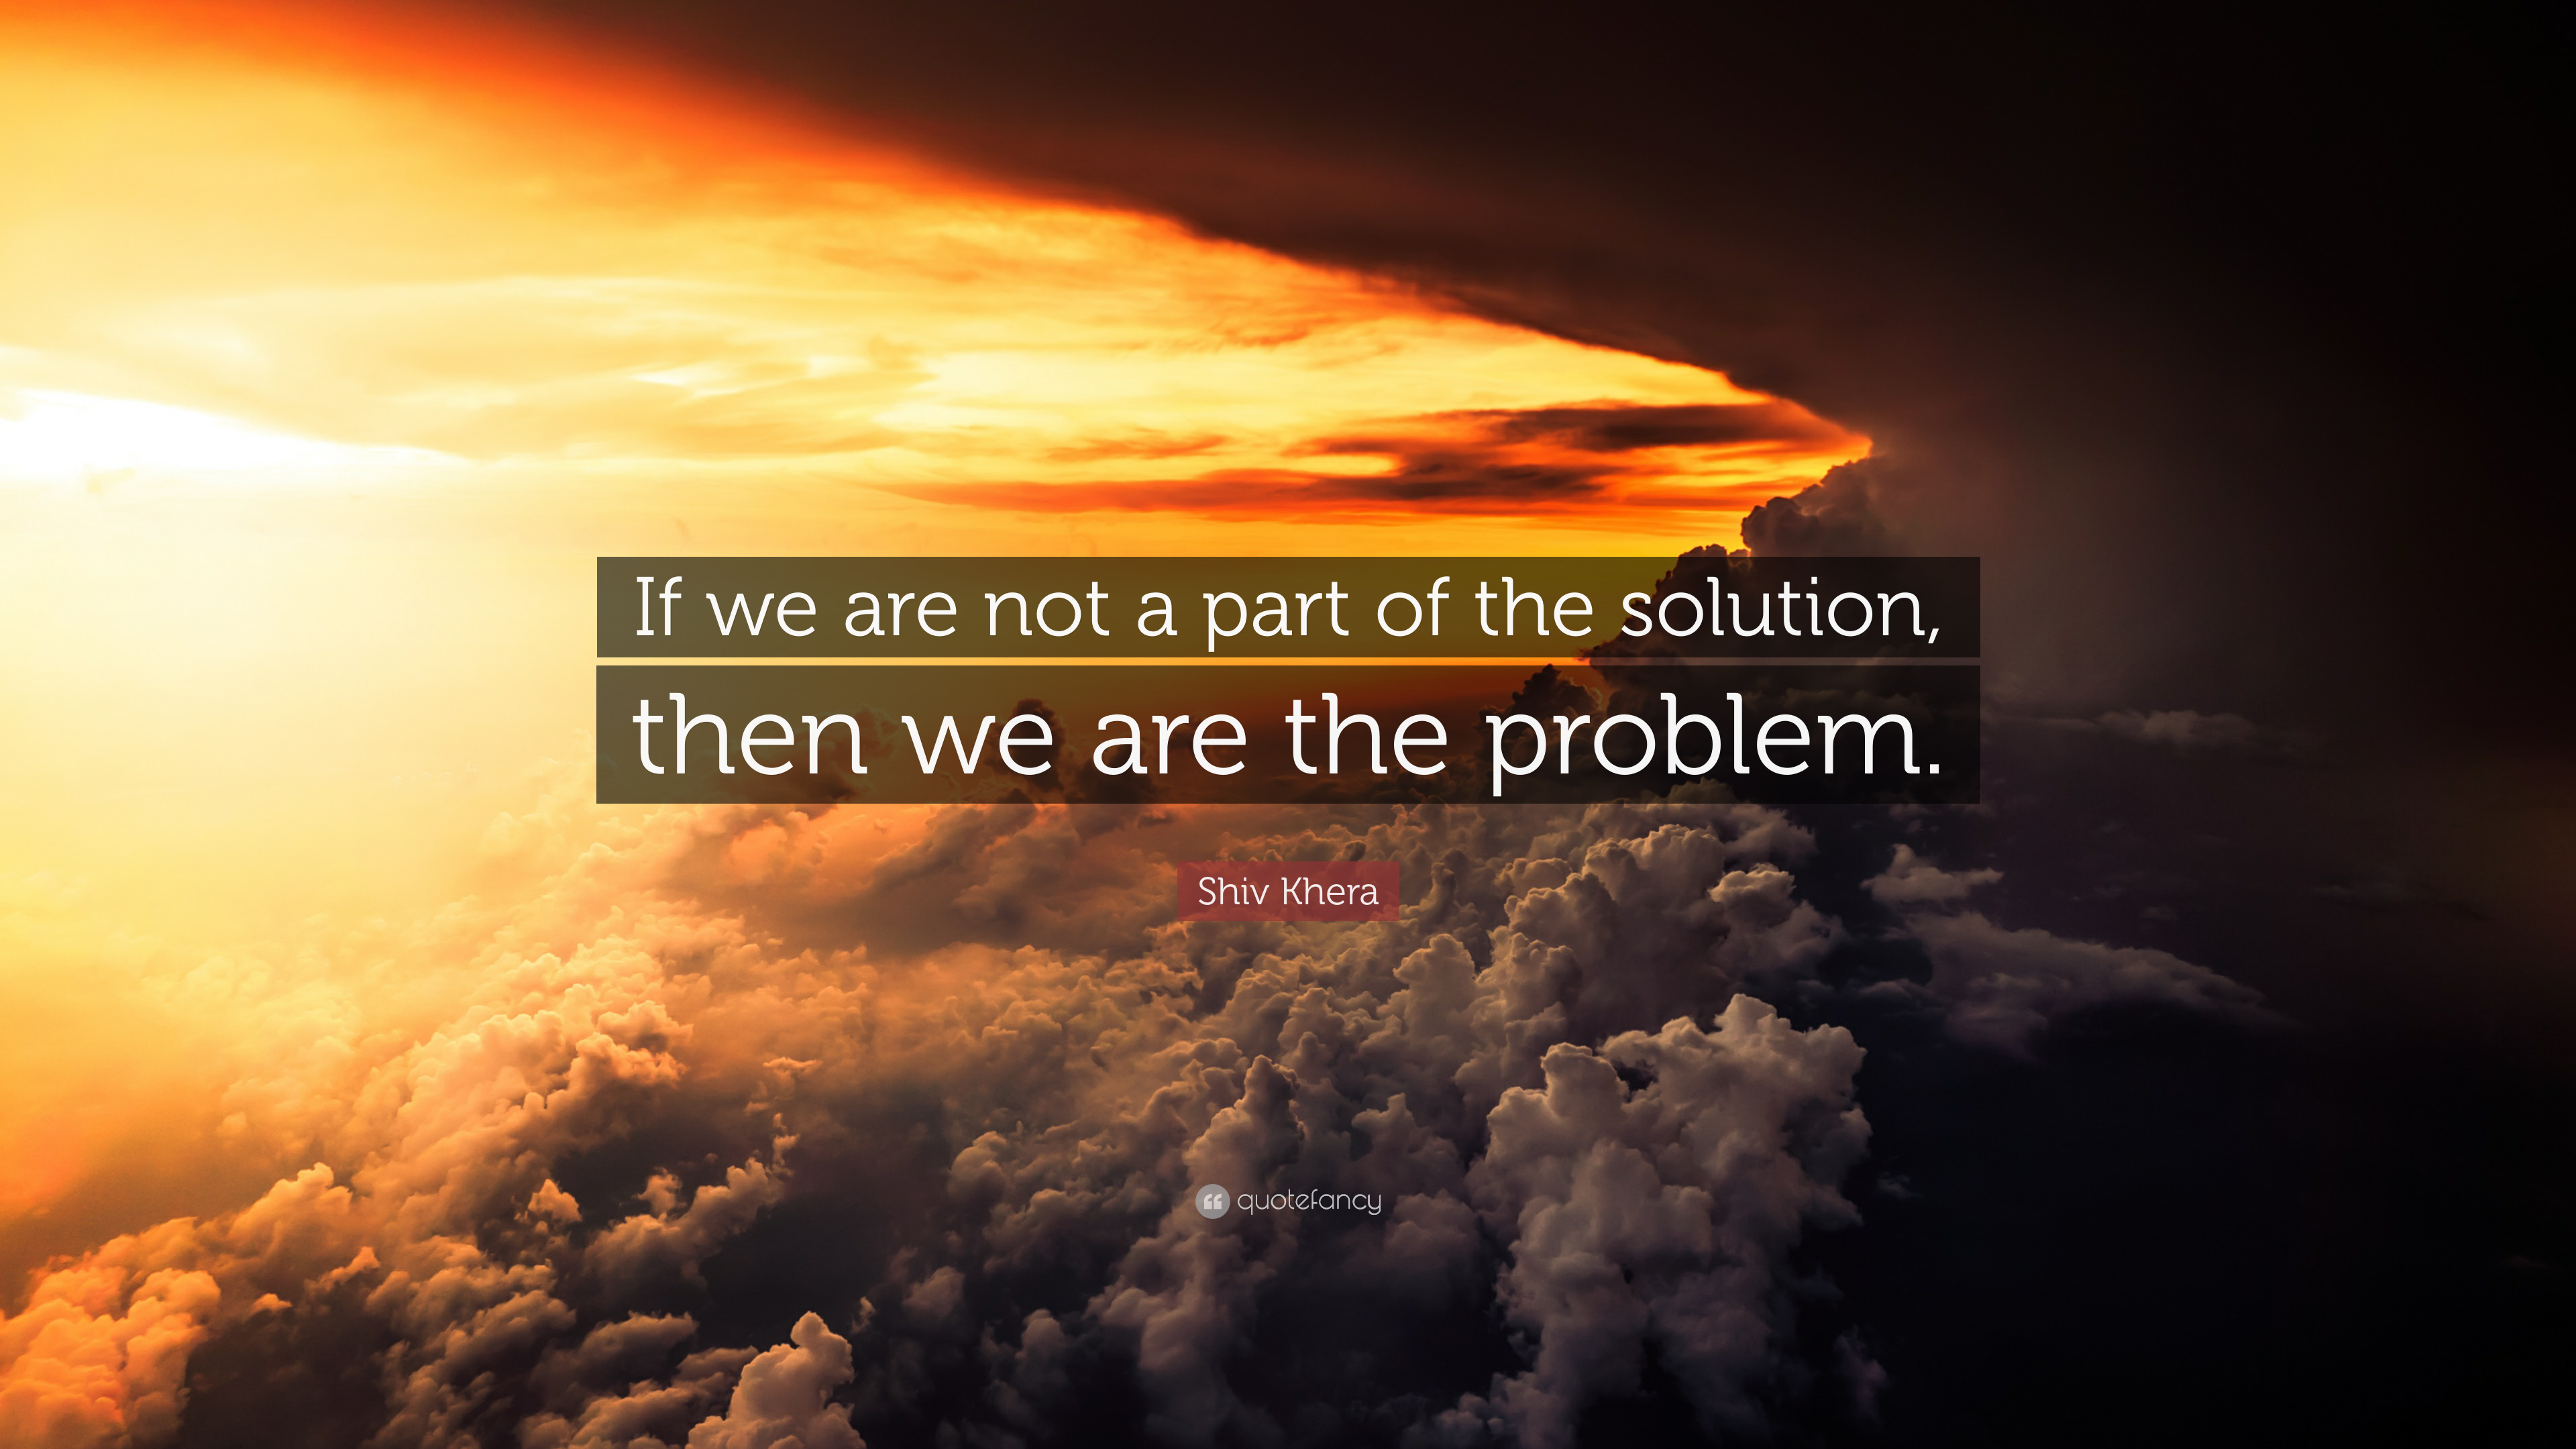 Shiv Khera Quote If We Are Not A Part Of The Solution Then We Are